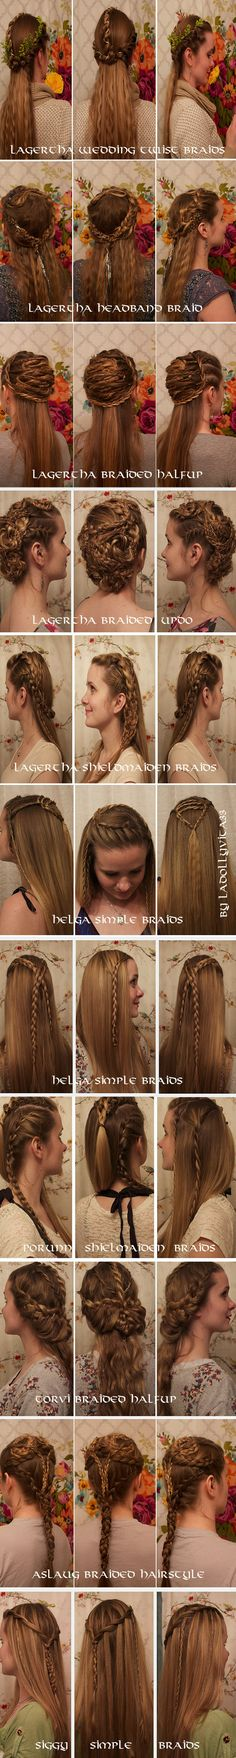 The Definitive Guide to Viking Braids. Get ready for your next raids with these amazing braided hairstyles!